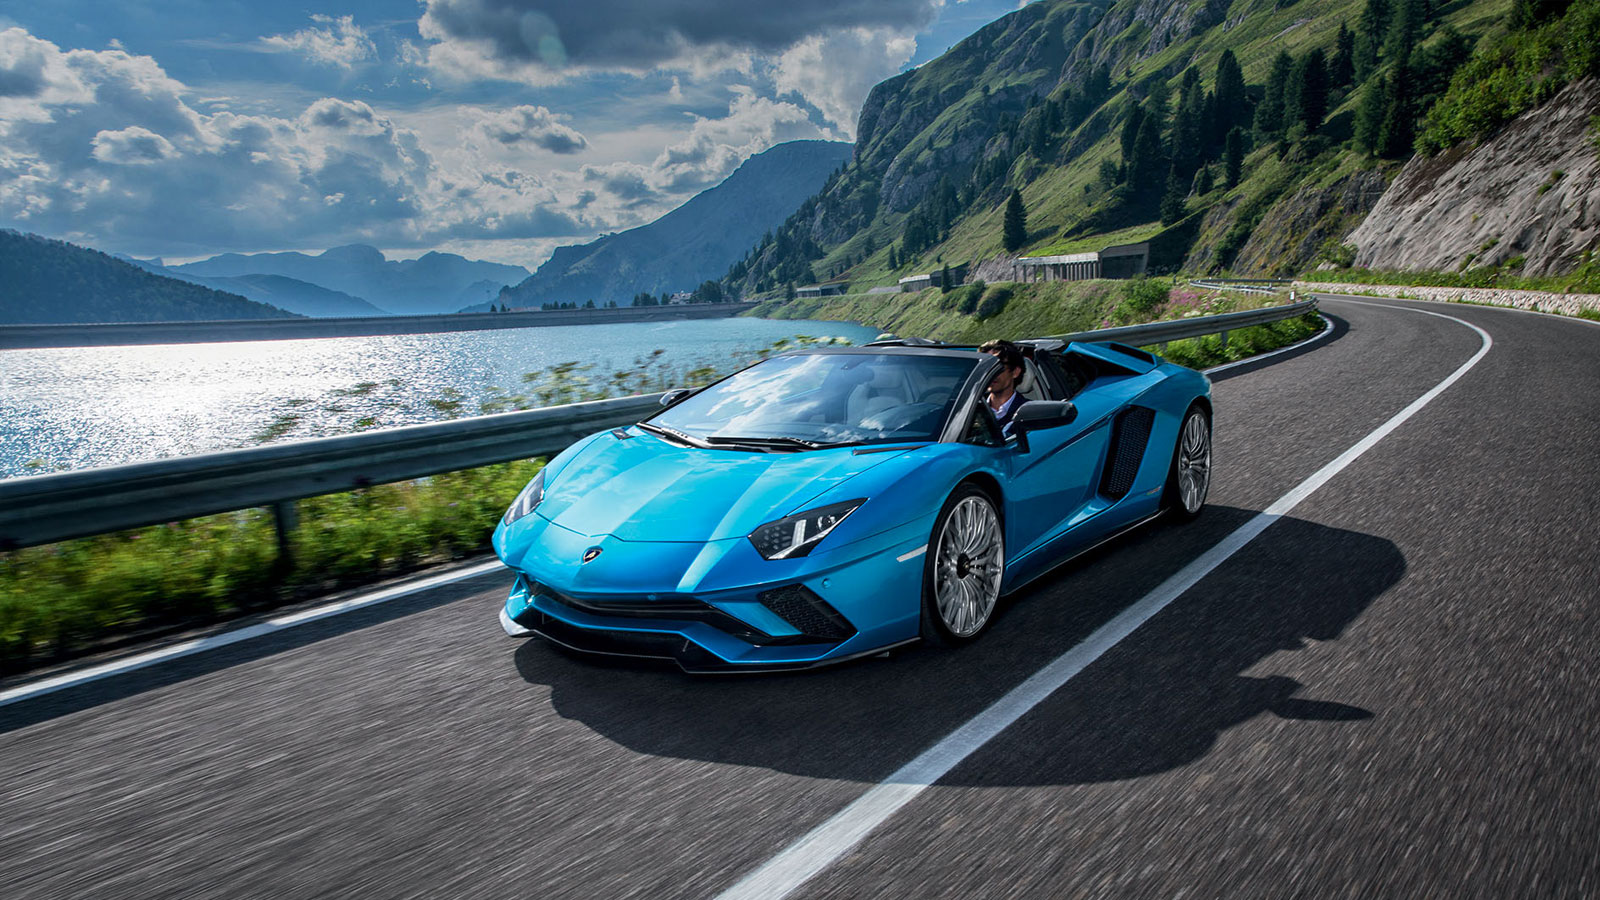 Lamborghini Aventador S Roadster - The Open Top Icon image 2